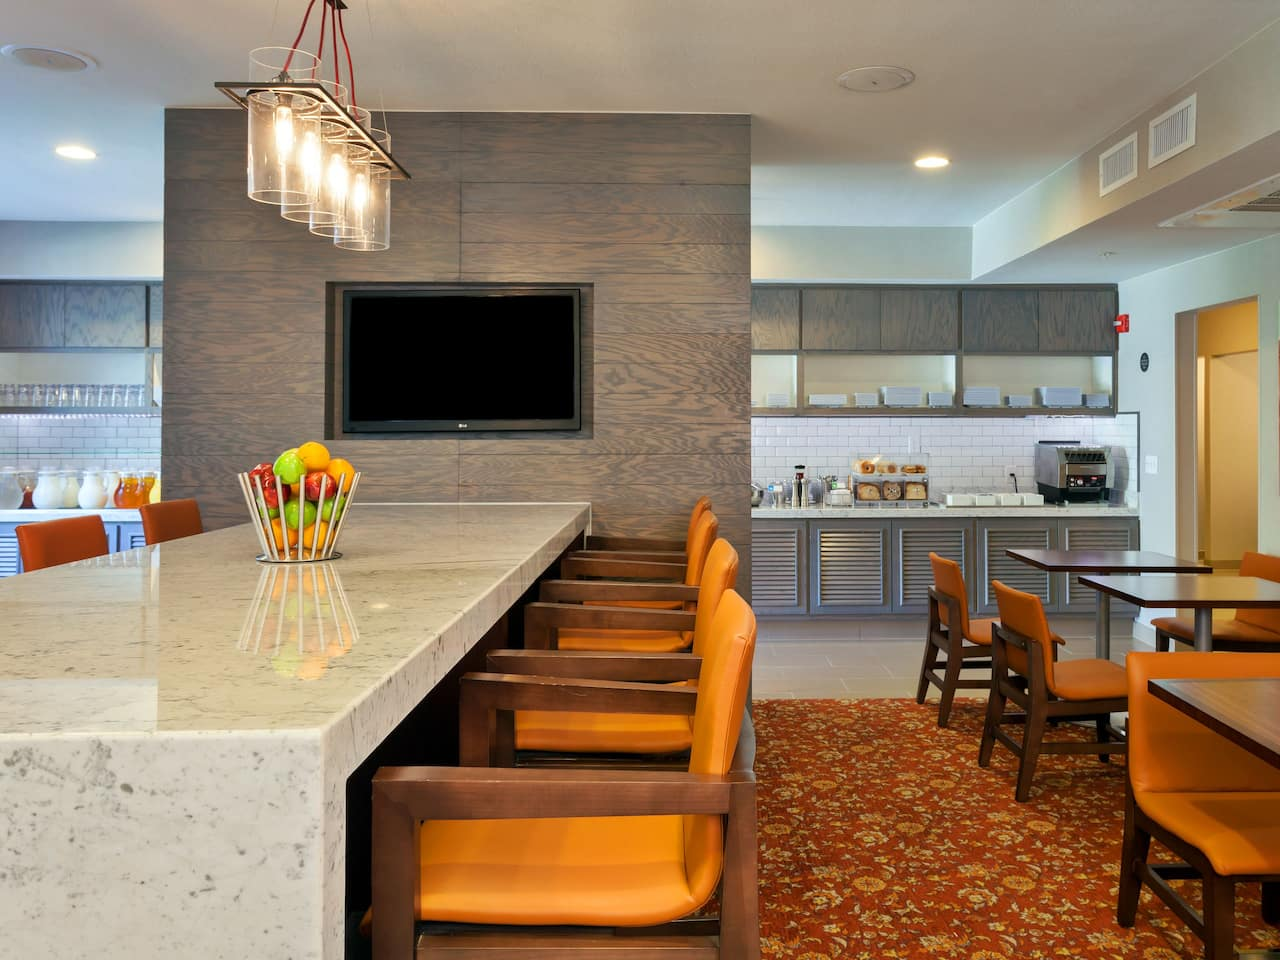 Hyatt House Breakfast Room